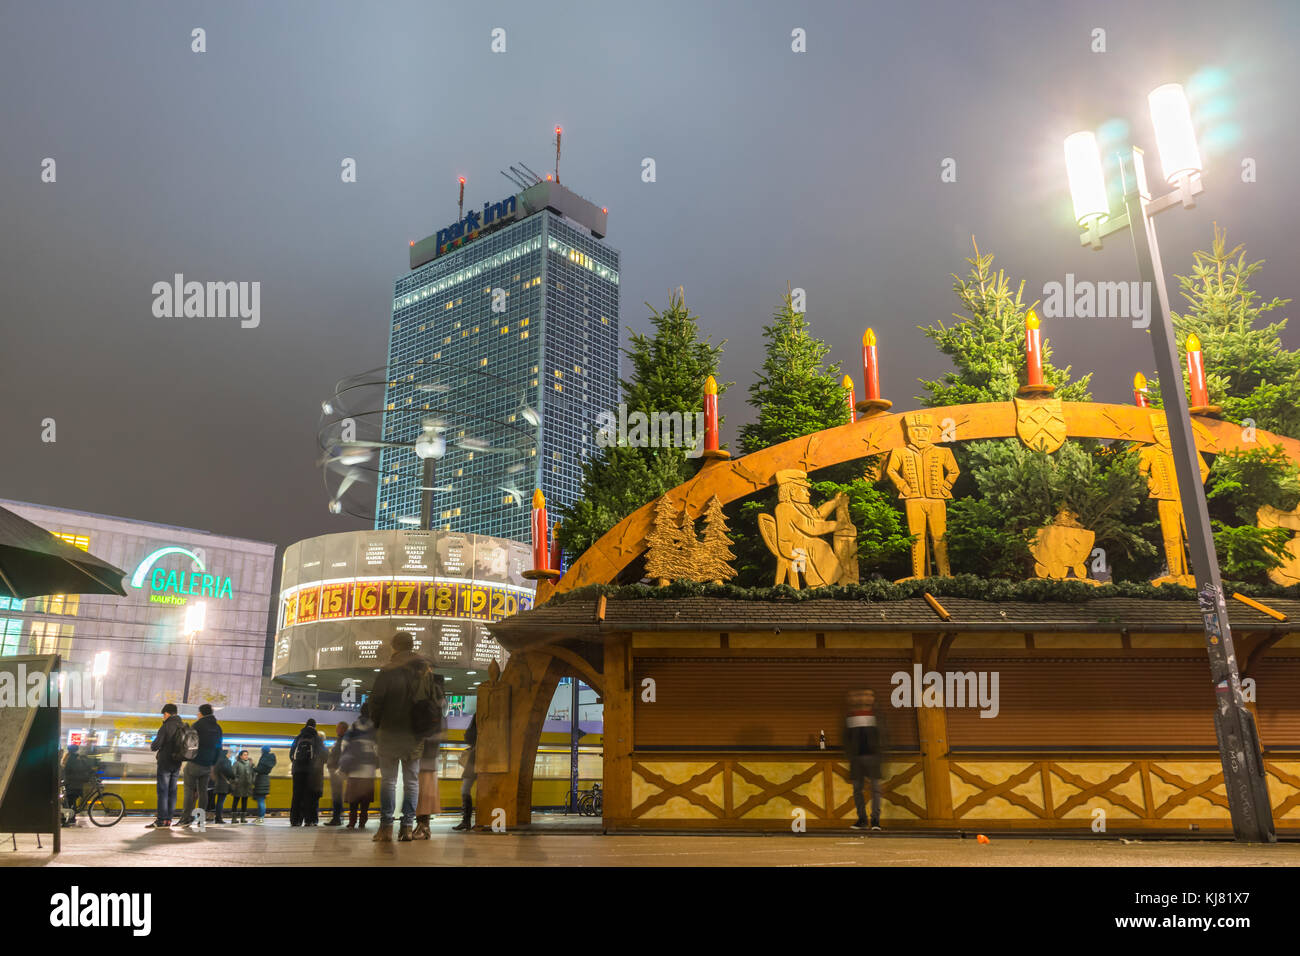 View over Alexanderplatz in Berlin at night with the World time clock (Weltzeituhr) and the Park Inn Hotel and the - Stock Image